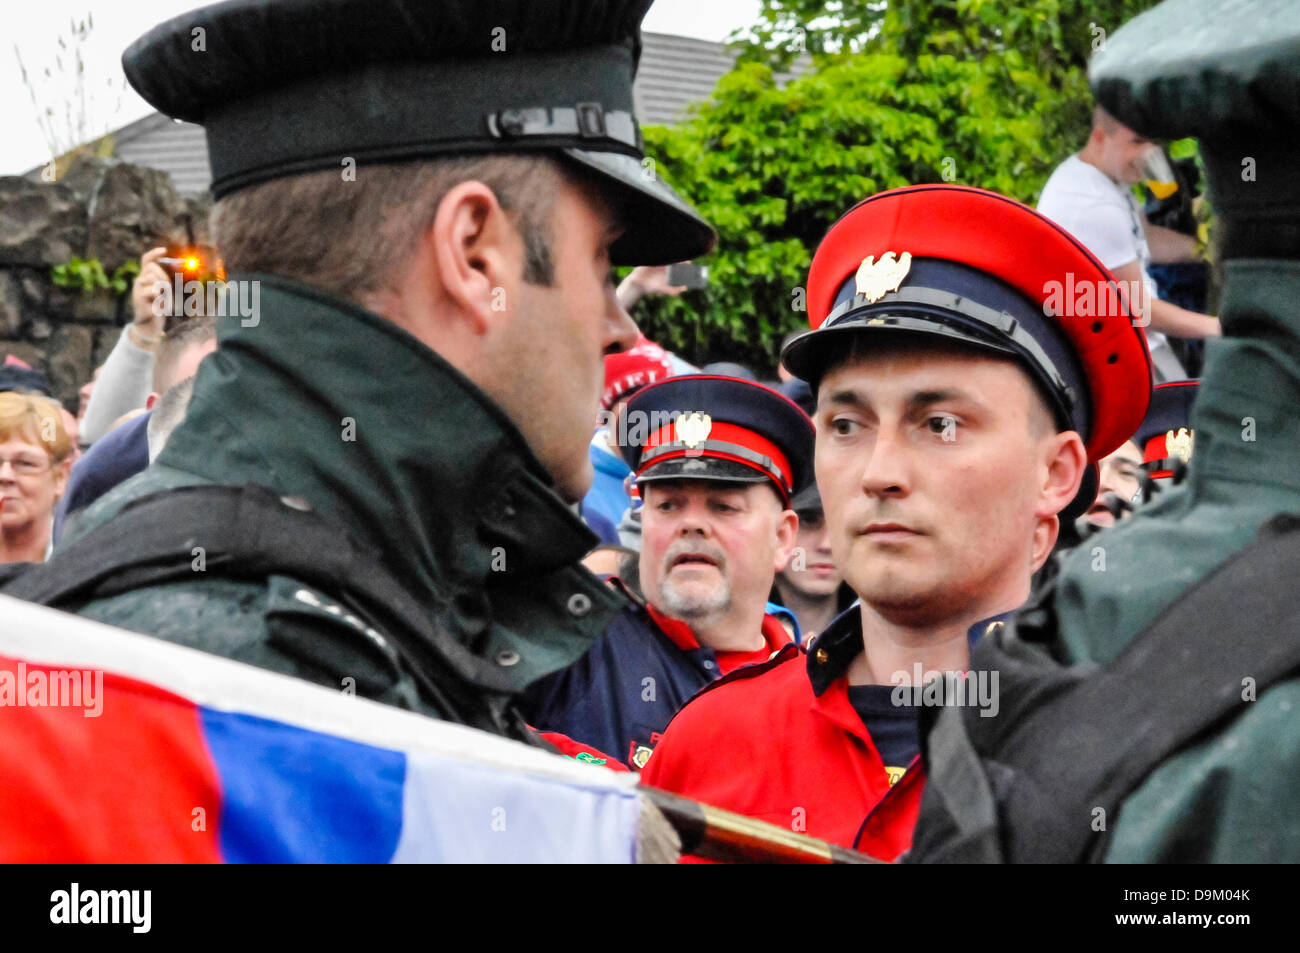 Belfast, Northern Ireland. 21st June 2013.  A loyalist member of the colour party lowers flag his flag through the - Stock Image